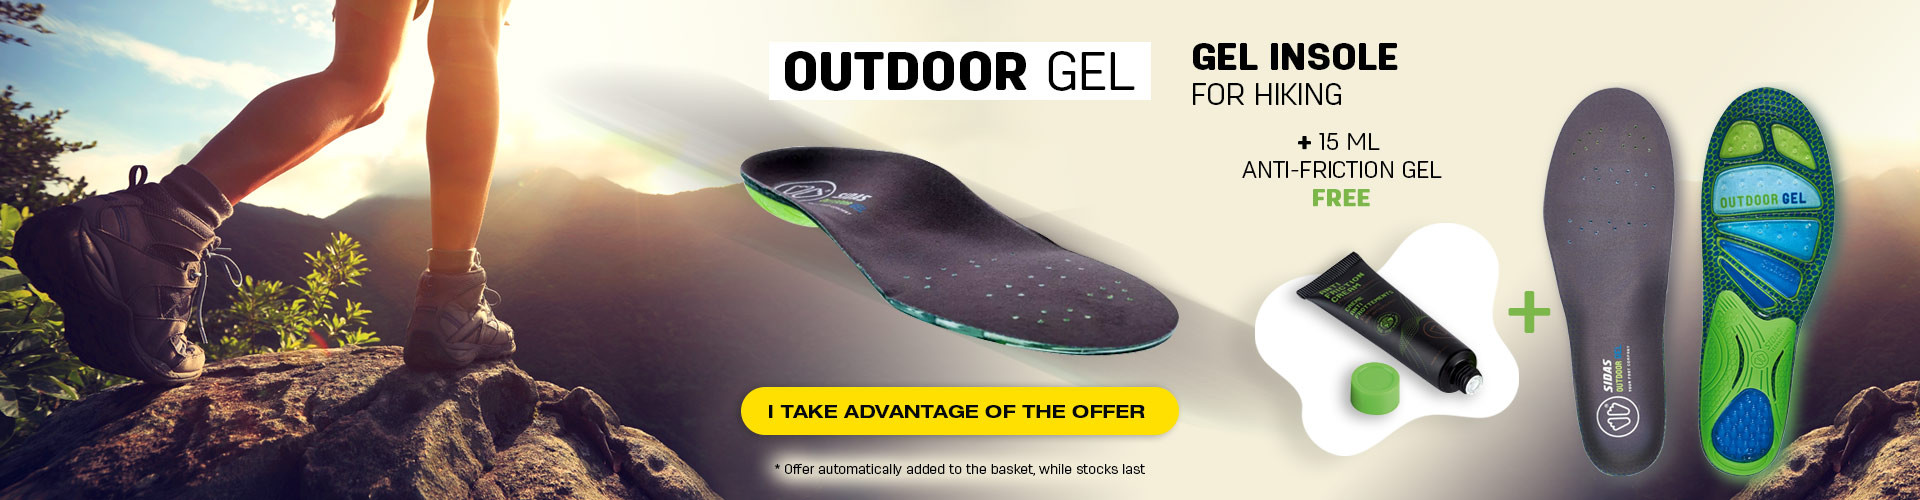 Discover our Outdoor Gel insoles for hiking! Get your free anti-friction cream 15ml when you buy a pair of Gel insoles